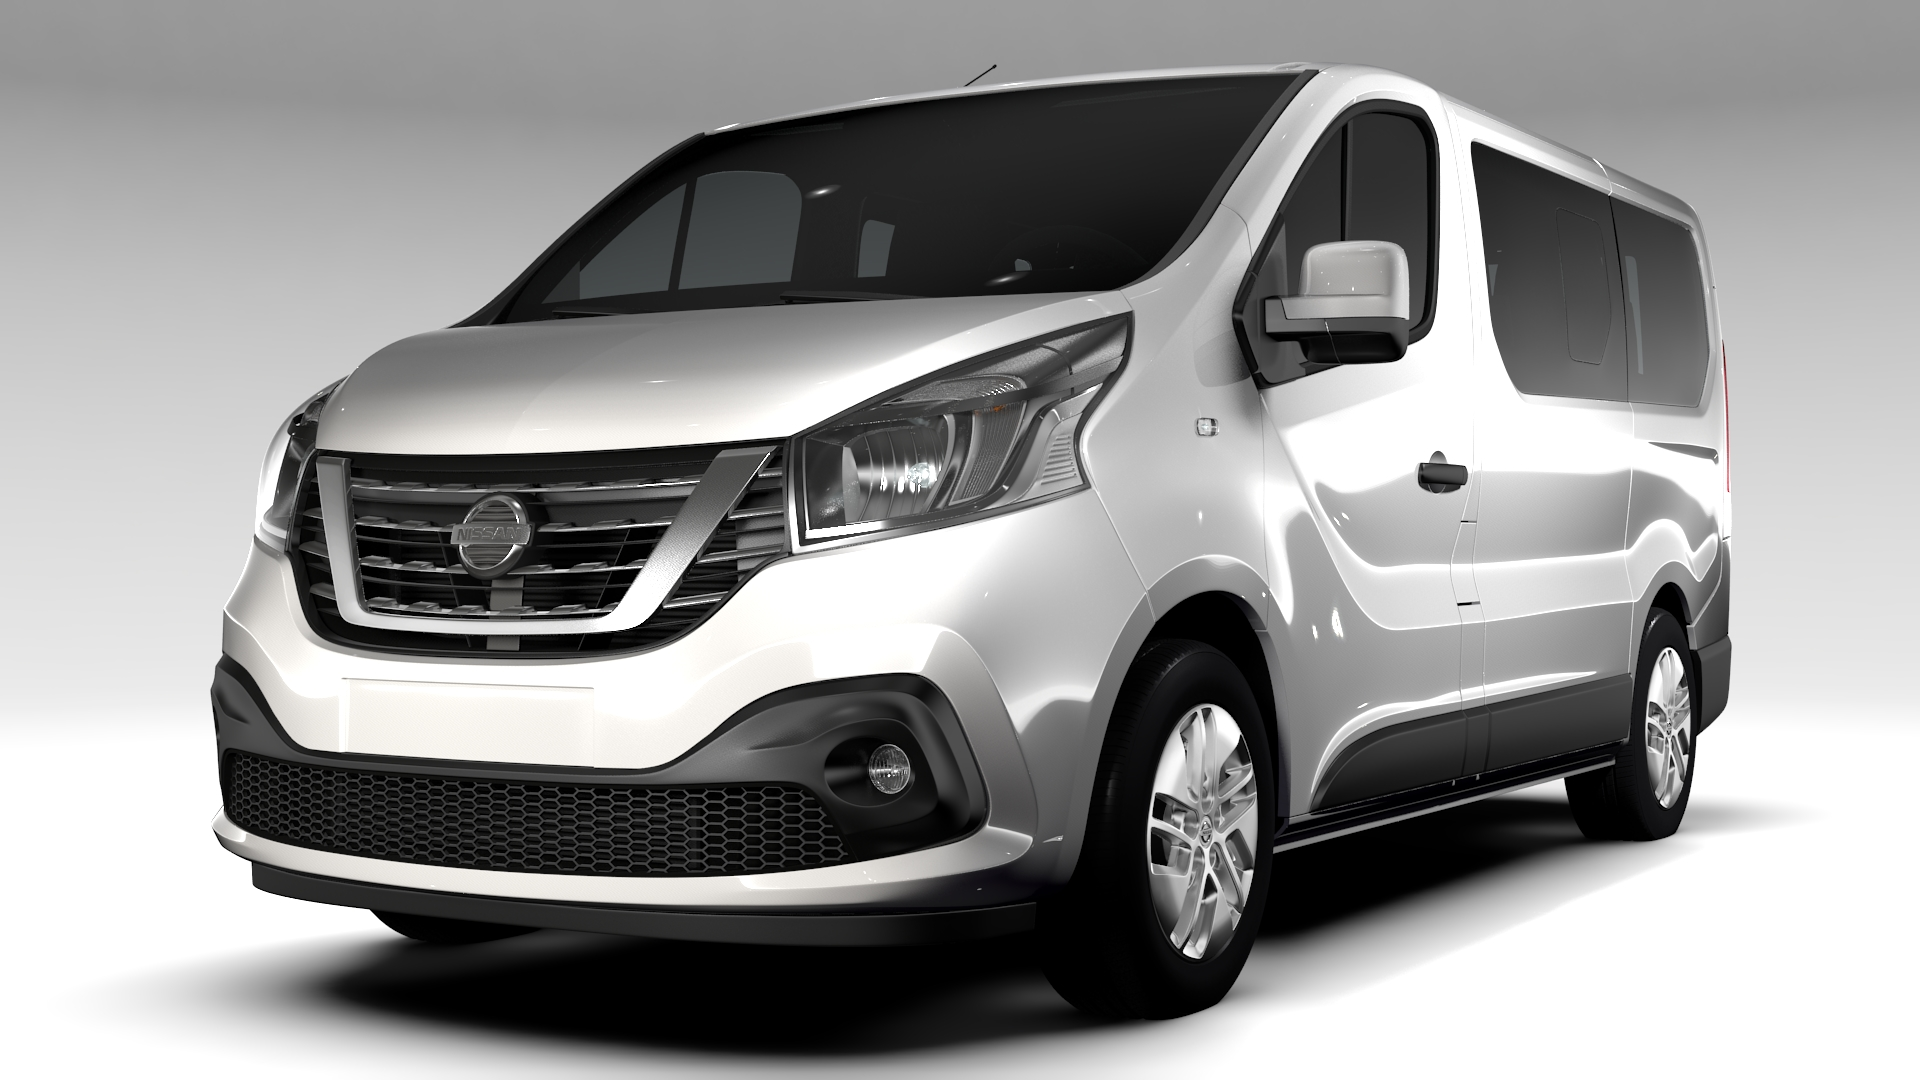 nissan nv 300 combi 2016 3d model 3ds max fbx c4d le do thoil 220854